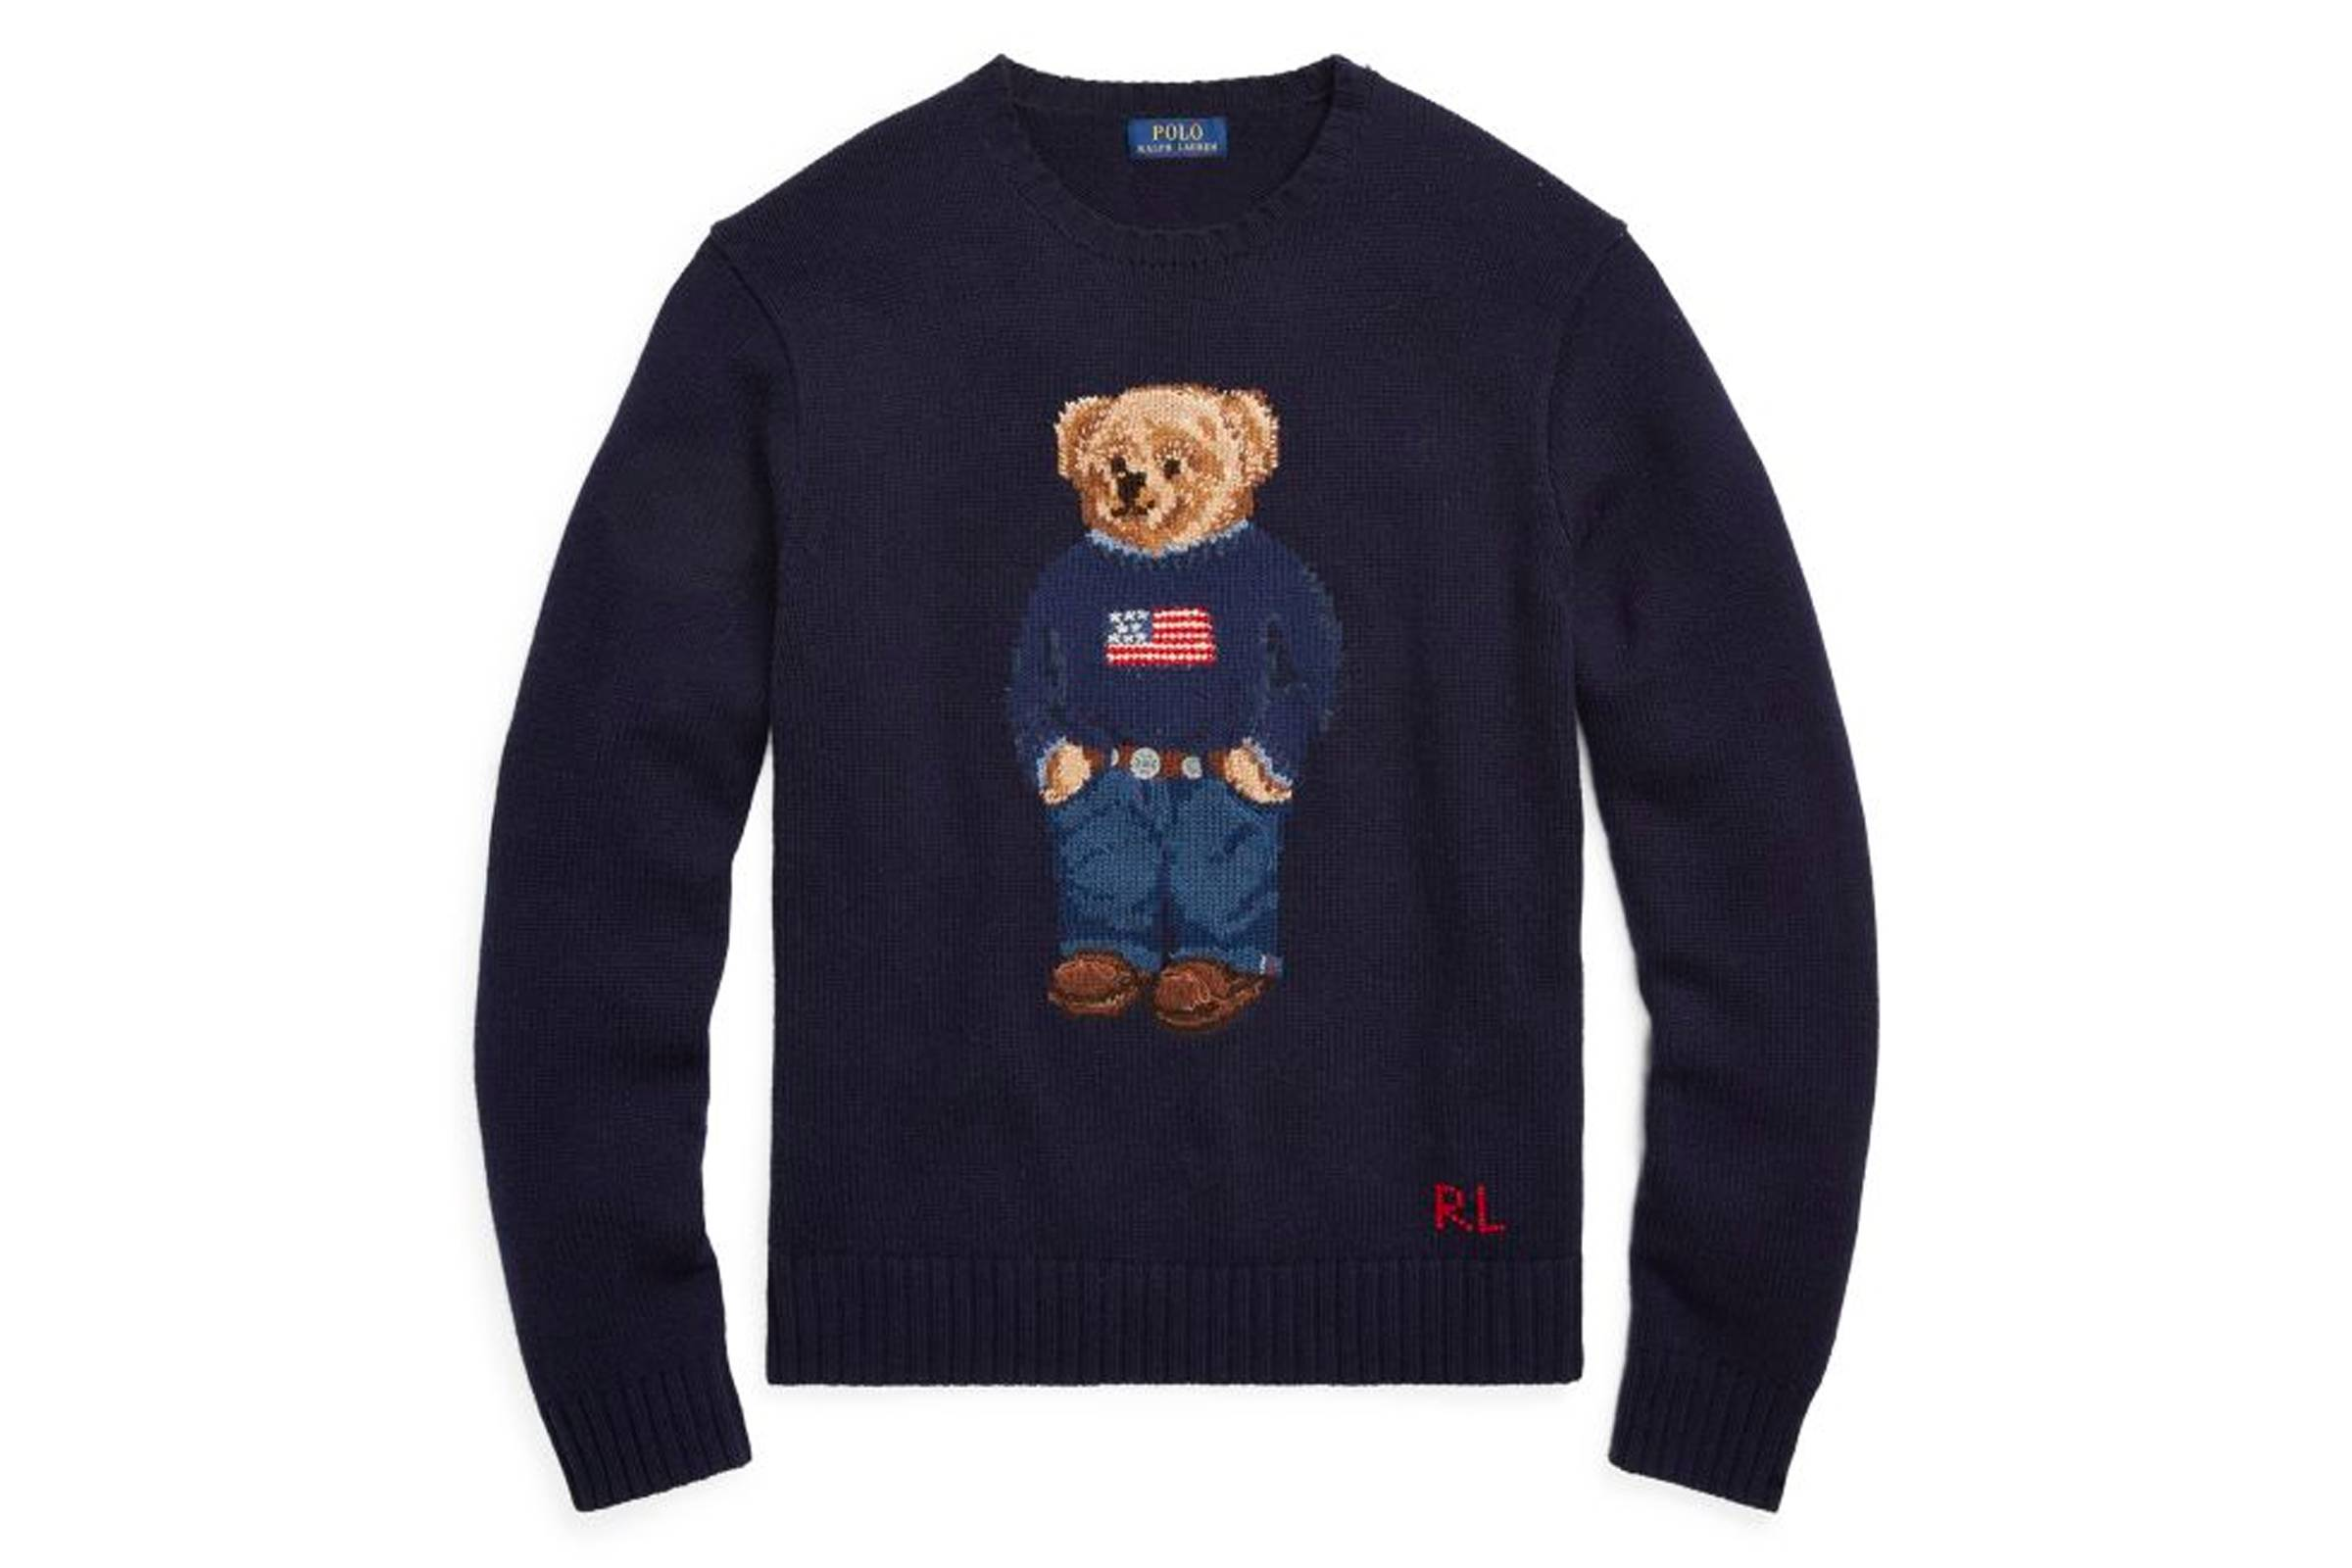 173a7b71a An Abridged History of The Polo Bear - Ralph Lauren Polo Bear ...